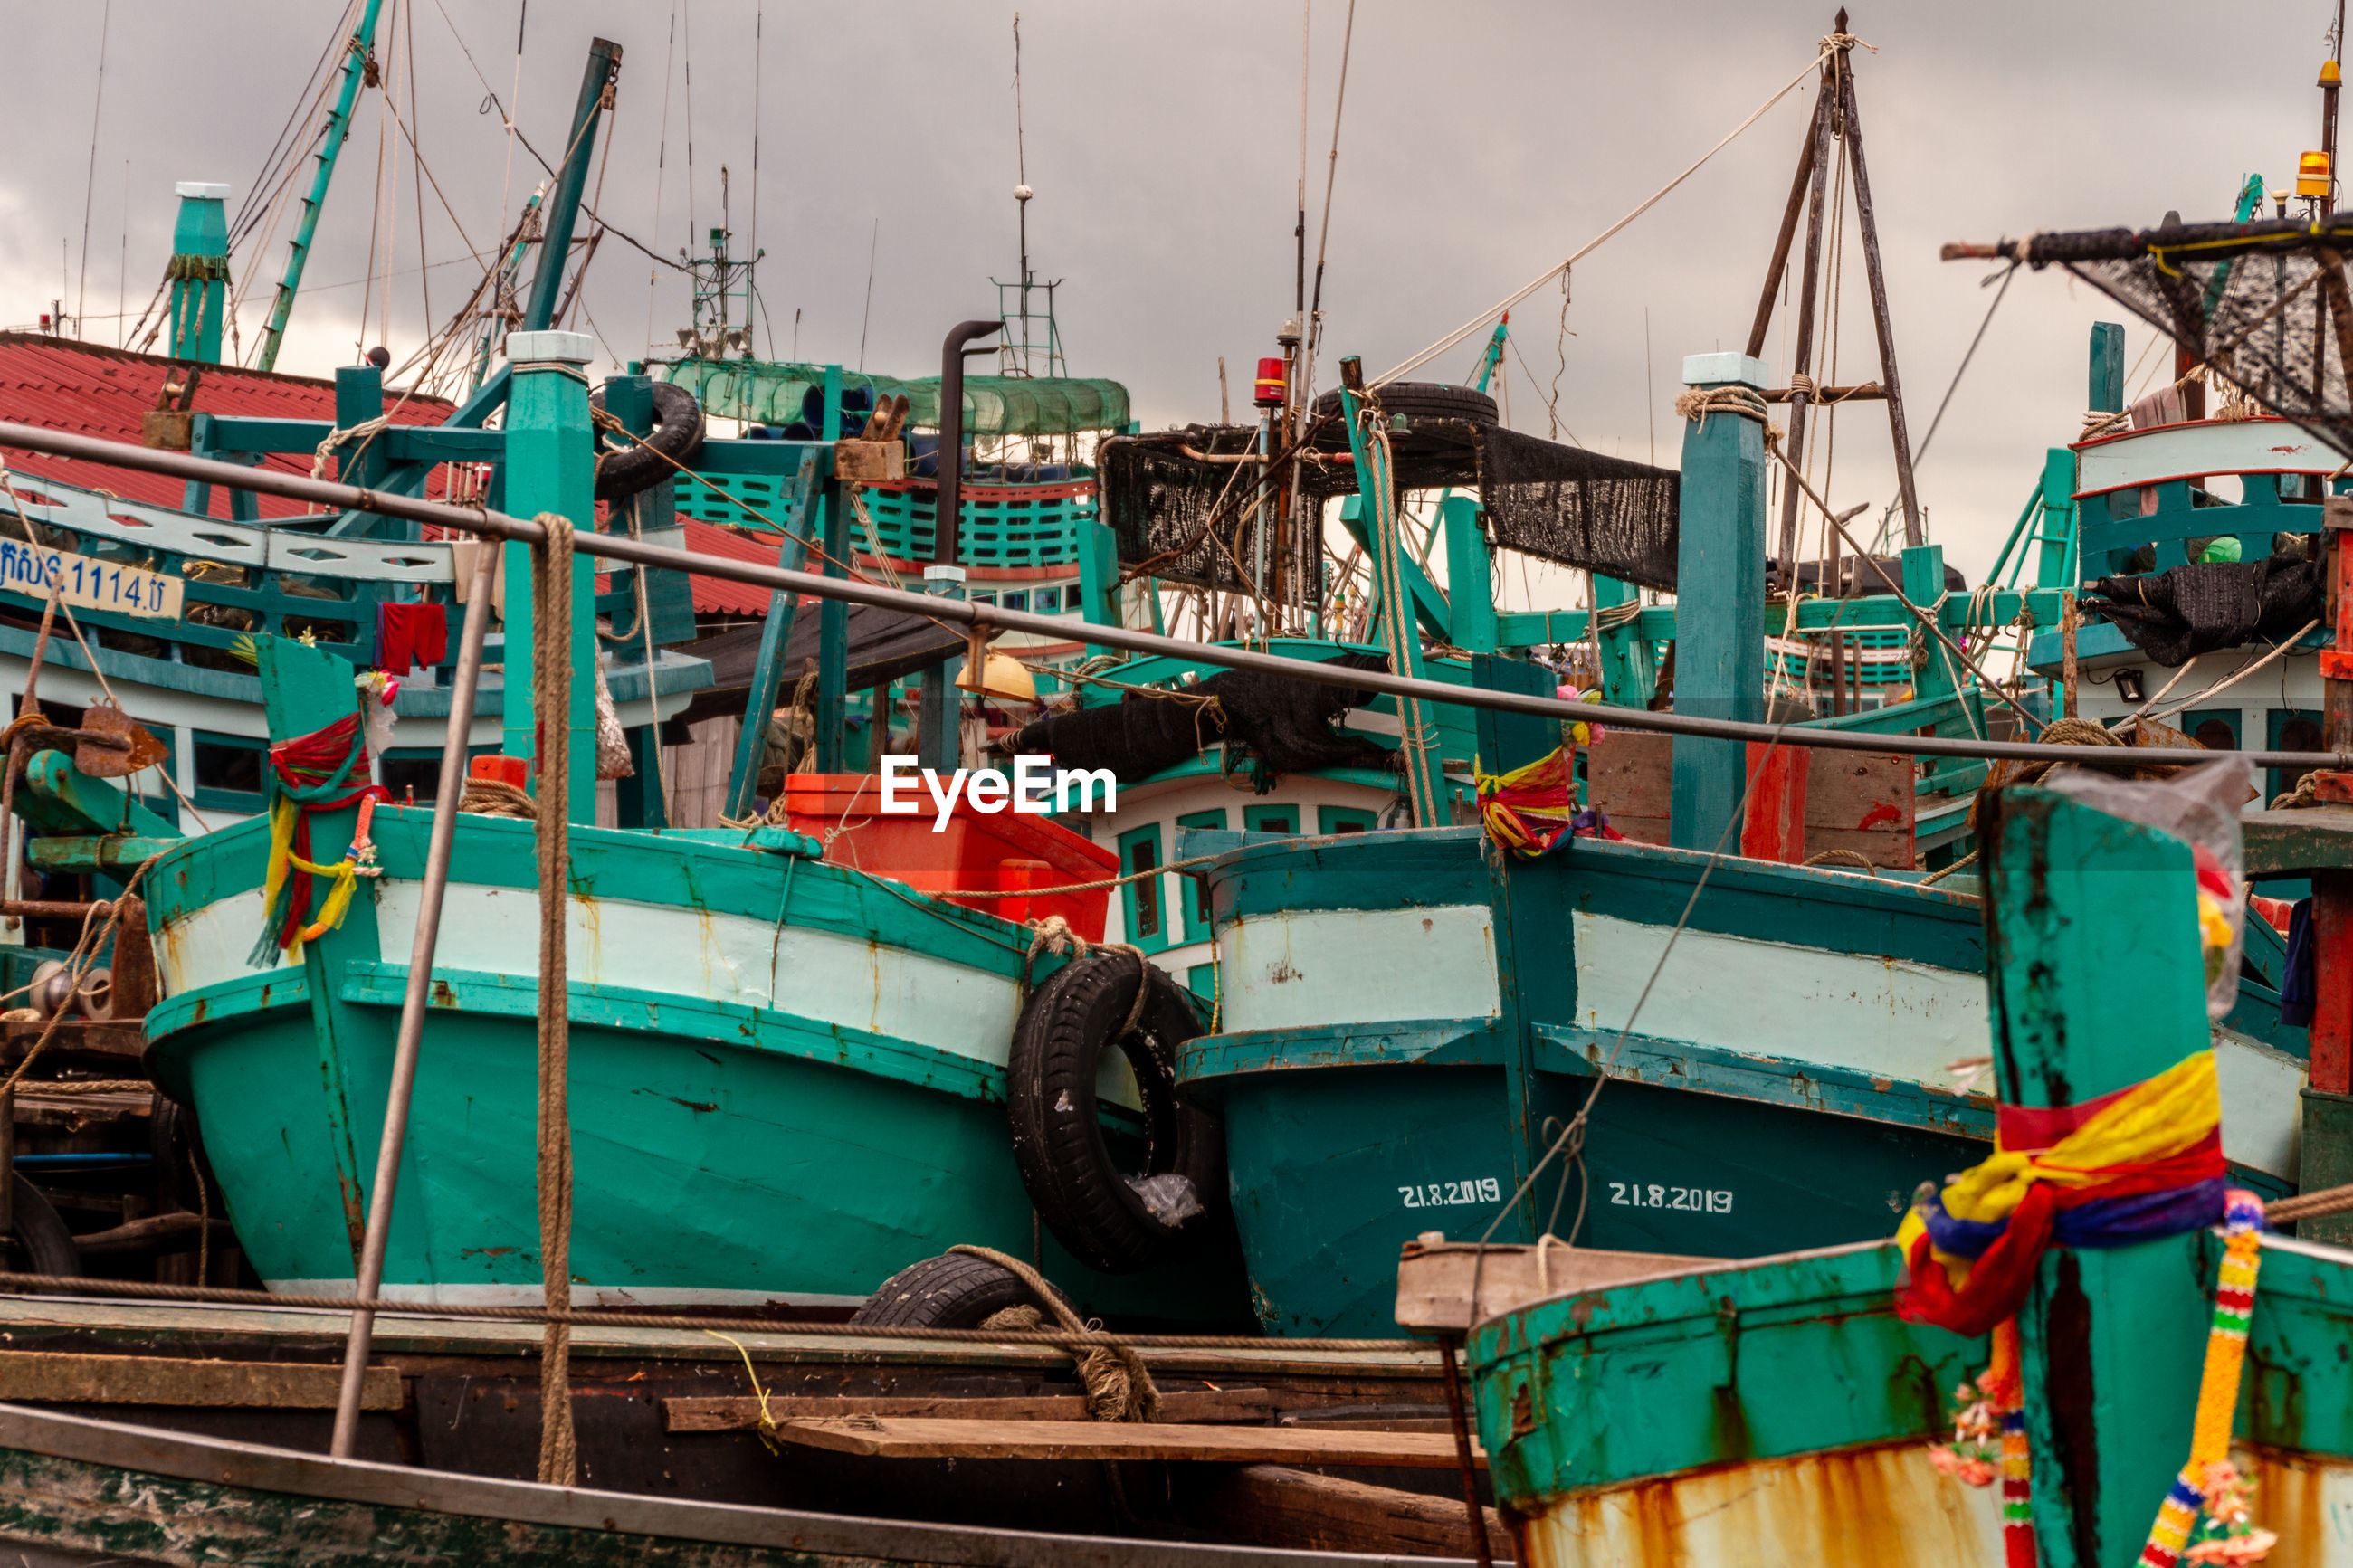 FISHING BOATS MOORED IN HARBOR